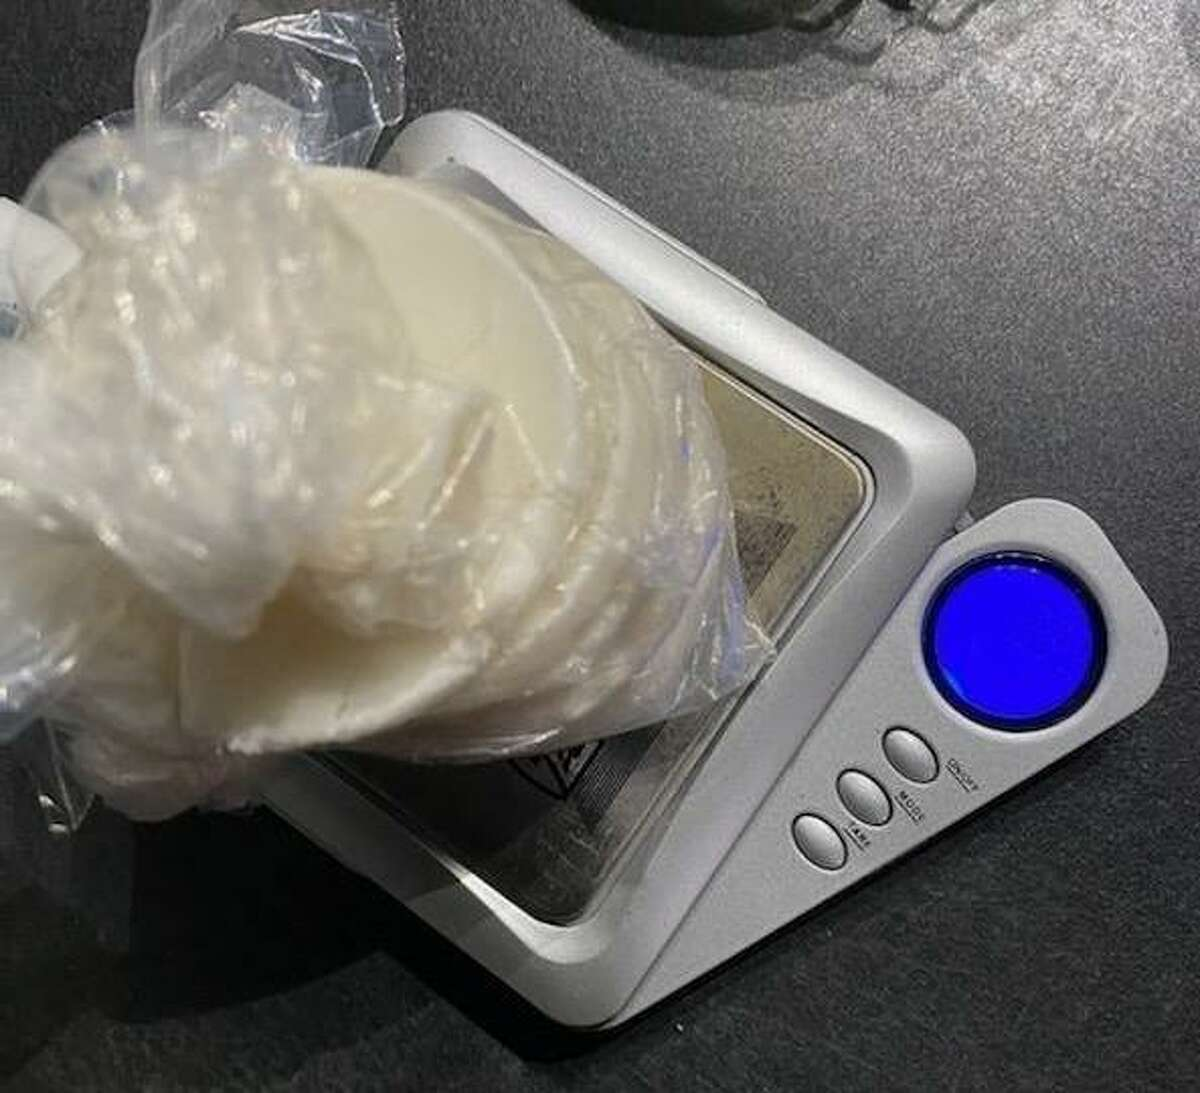 Following a traffic stop on Oct. 8 in New Caney, a Montgomery County Precinct 4 Constable's deputy found cocaine in the vehicle and on a passenger.